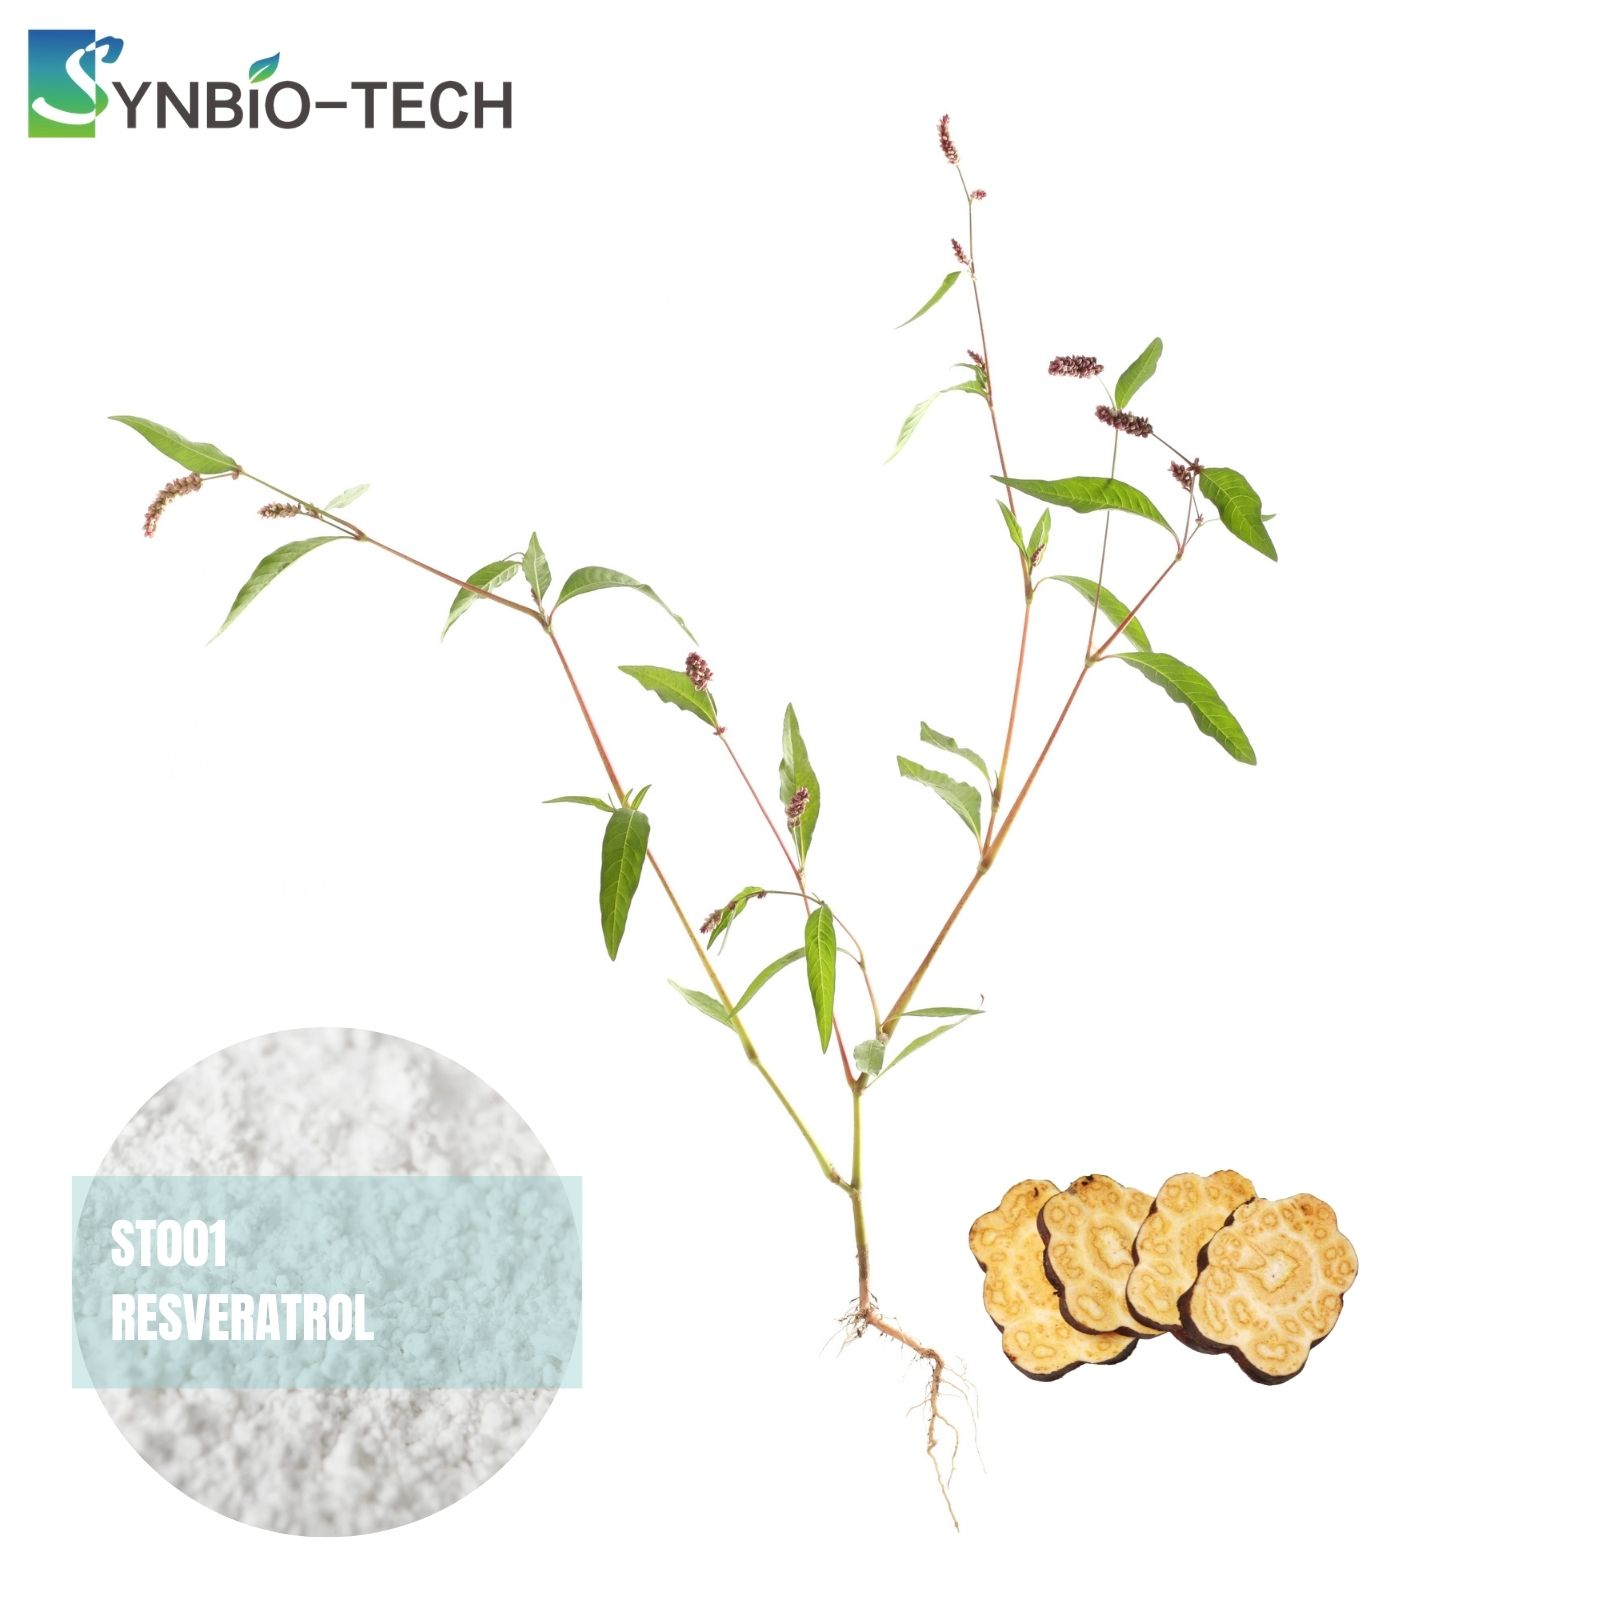 Syn-Bio Technology (Suzhou) Co., Ltd.